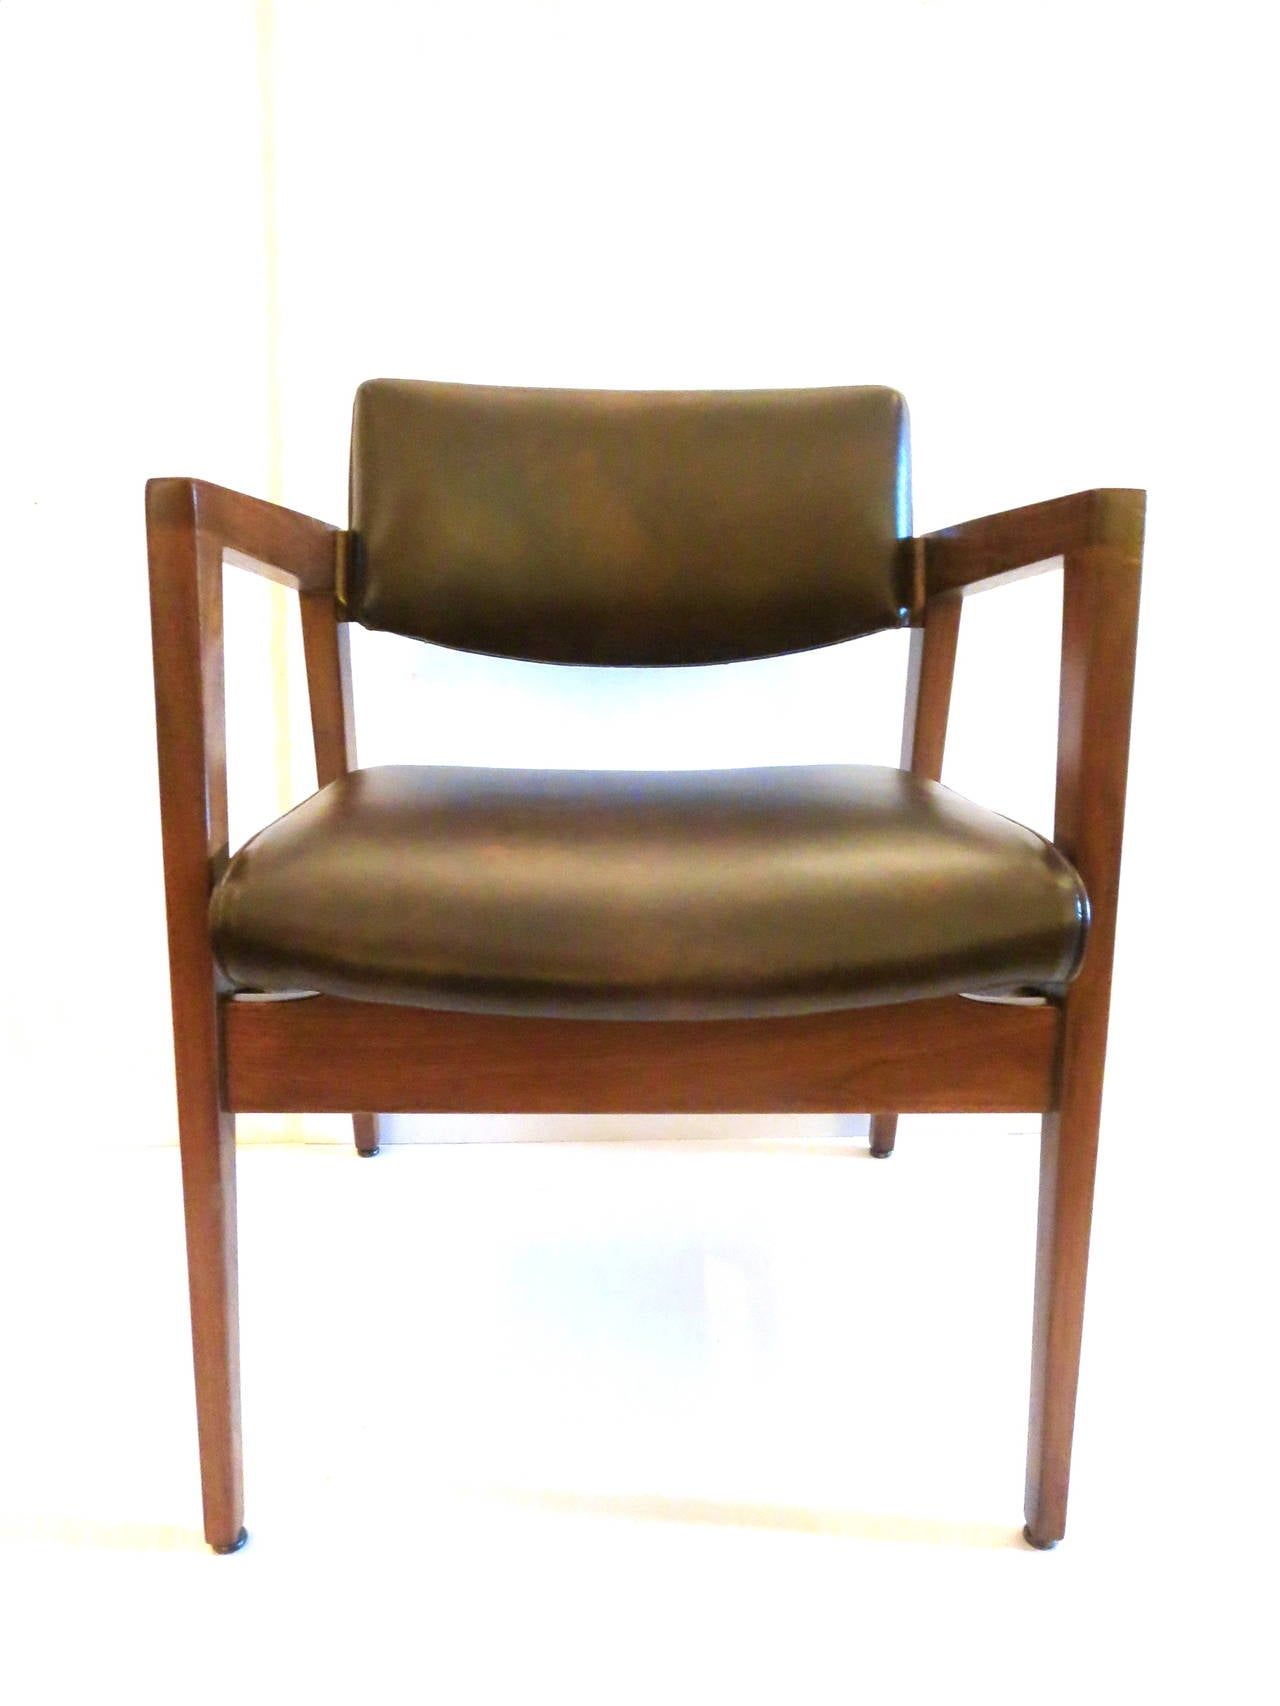 1950s american modern walnut and leather armchairs by American classic furniture company